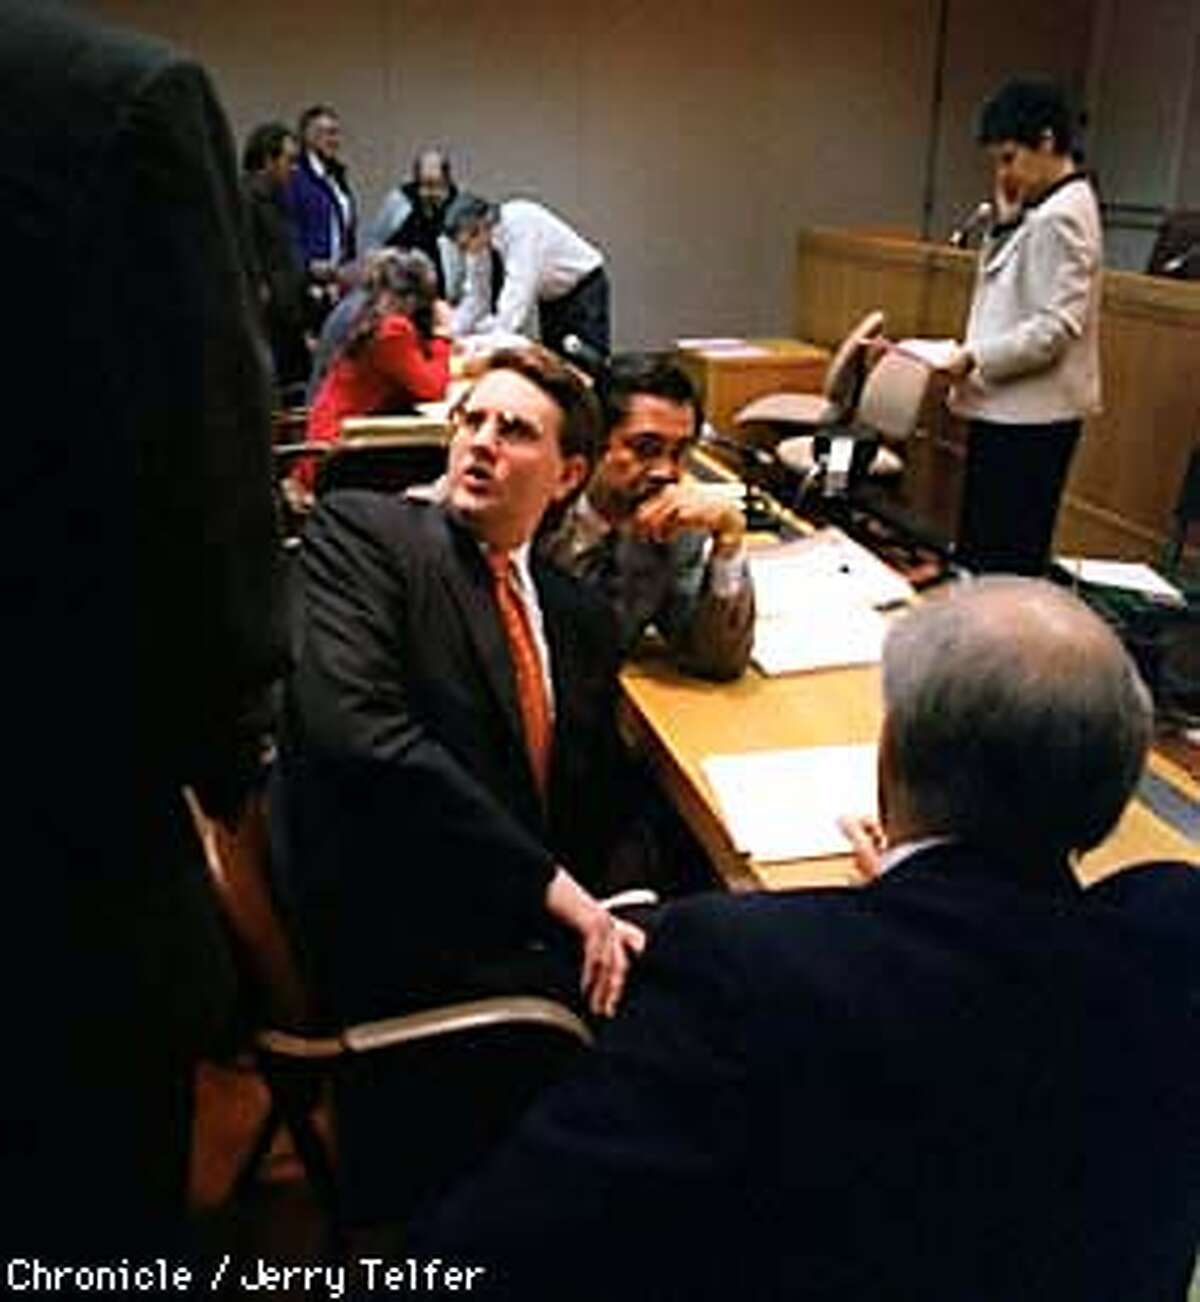 PUC 1/C/13FEB98/BU/JLT Christopher Mee (center, in glasses), head of Boston Finney, confers with associates and lawyers during a brief recess in a California Public Utilities Commission hearing into alleged fraud by his firm. 505 Van Ness Avenue PHOTO BY JERRY TELFER